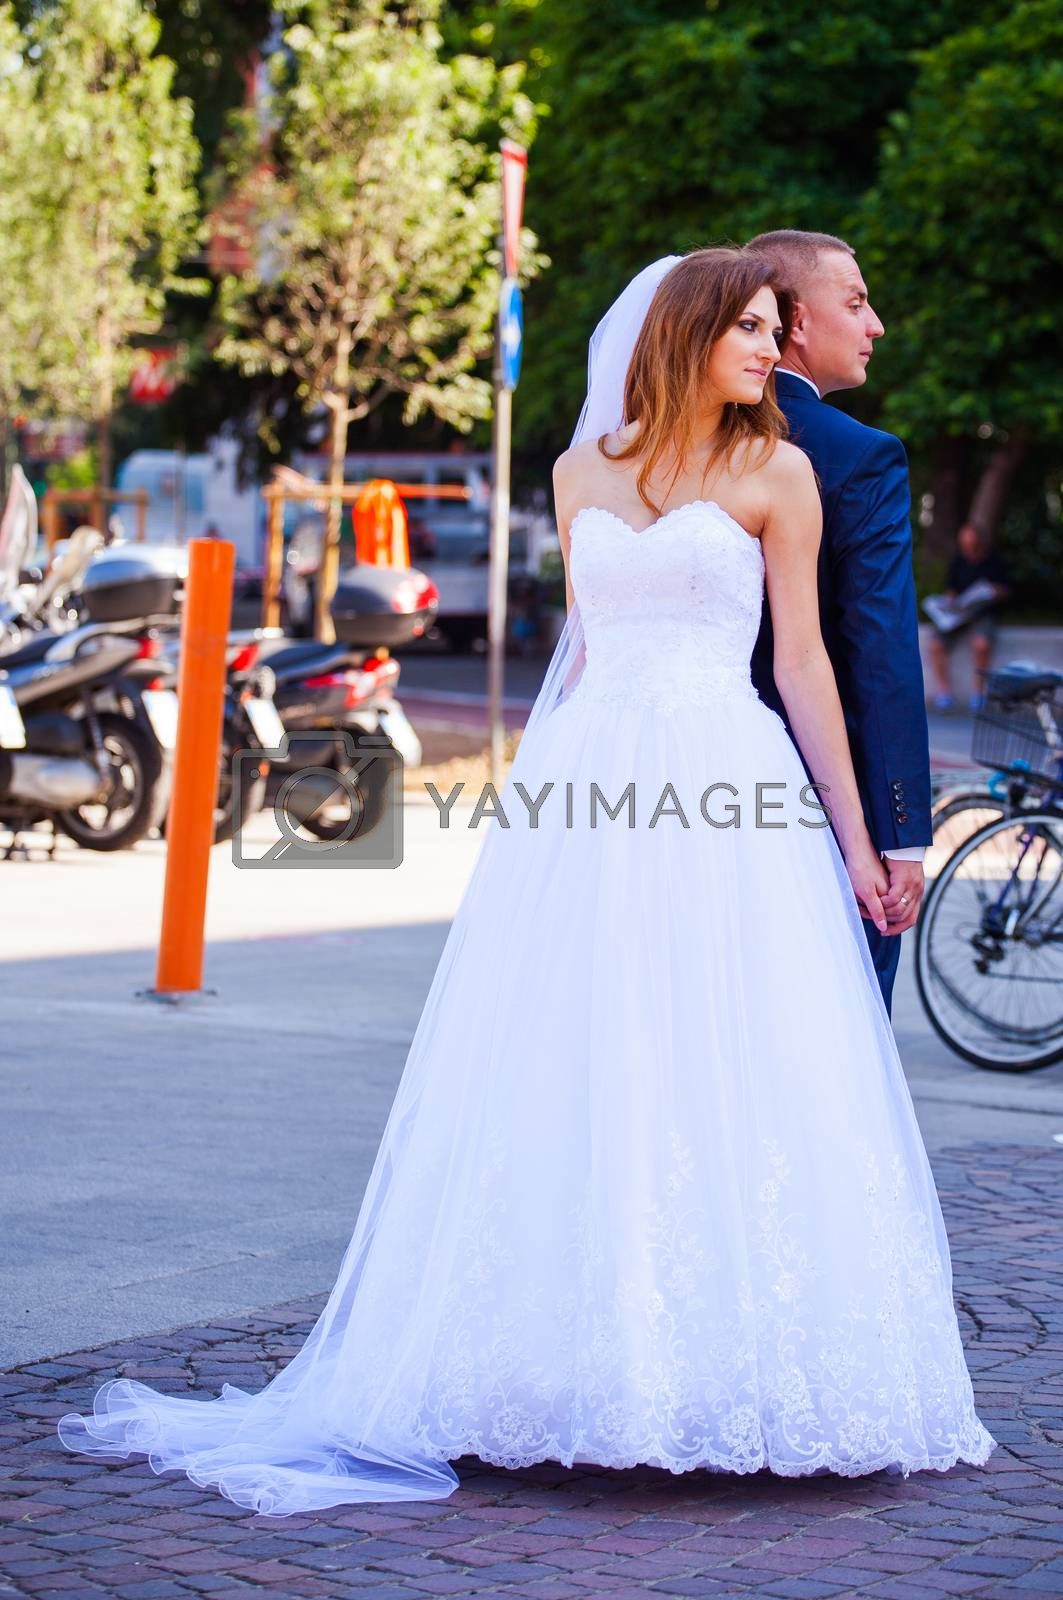 MILAN, ITALY - MAY, 15: Bride and groom posing for photo shooting on May 15, 2015